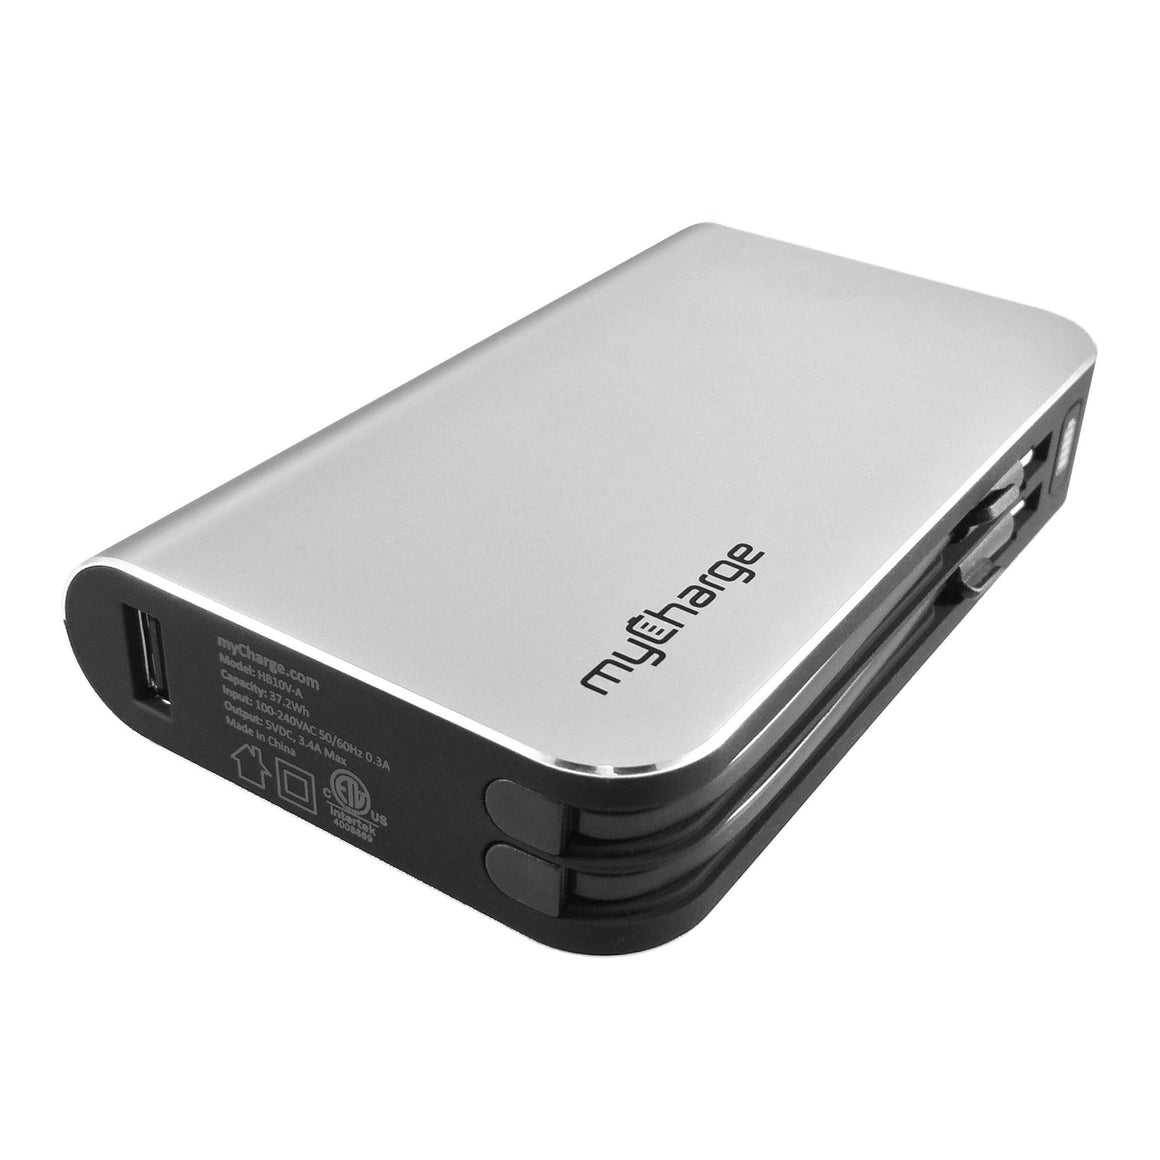 myCharge HubMax 9000mAh portable battery charger USB port